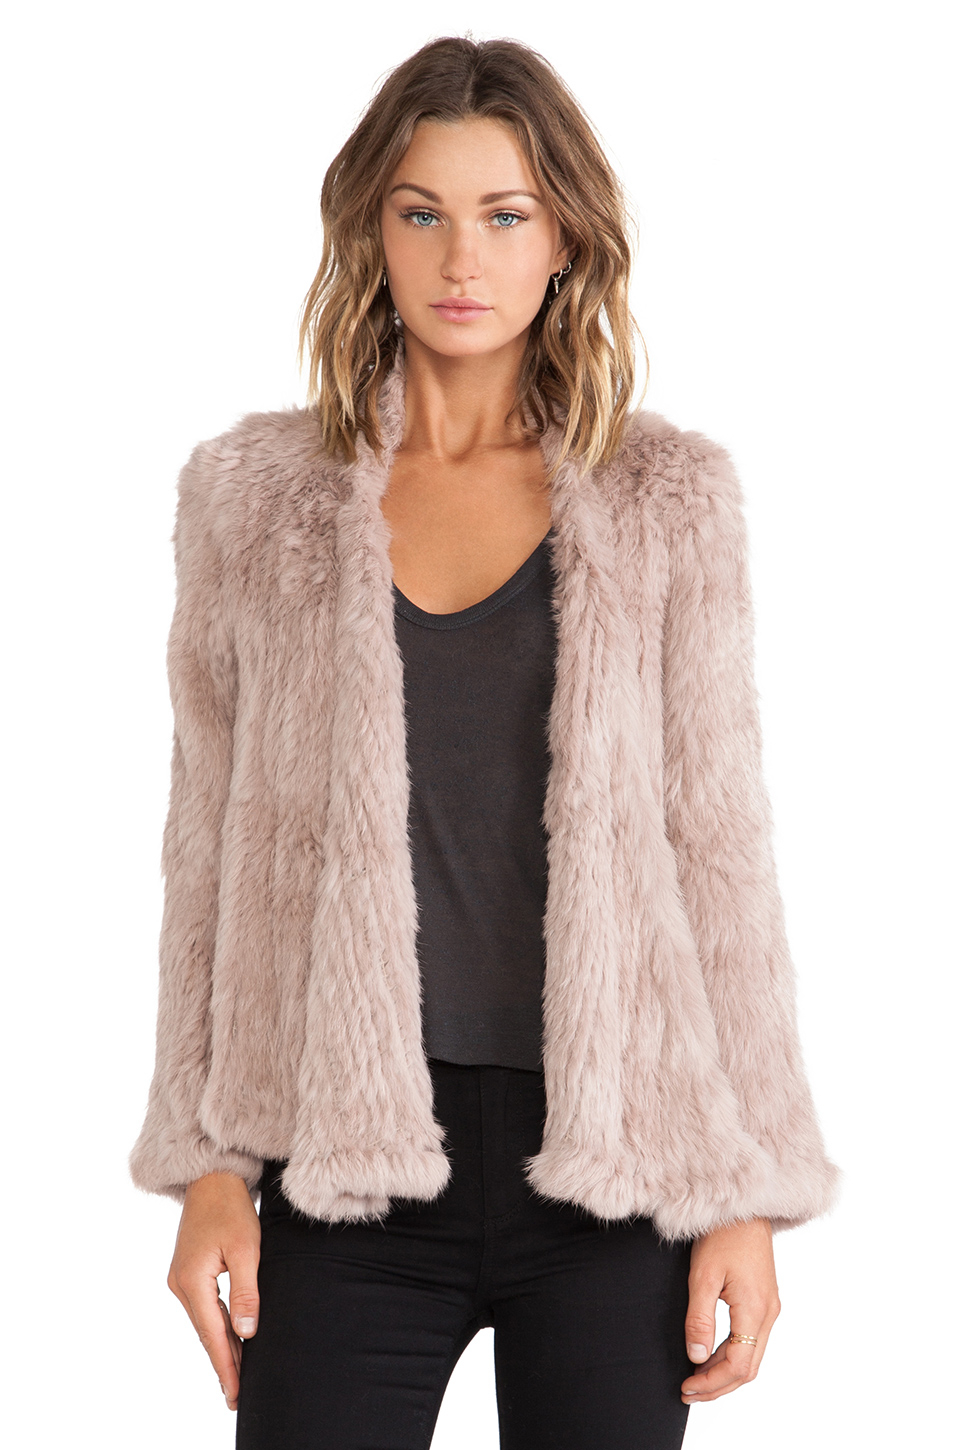 Rabbit fur jacket - Compare Prices & Store Ratings at bonjournal.tke Selection · Big Deals · Comparison Shopping · Top Brands.